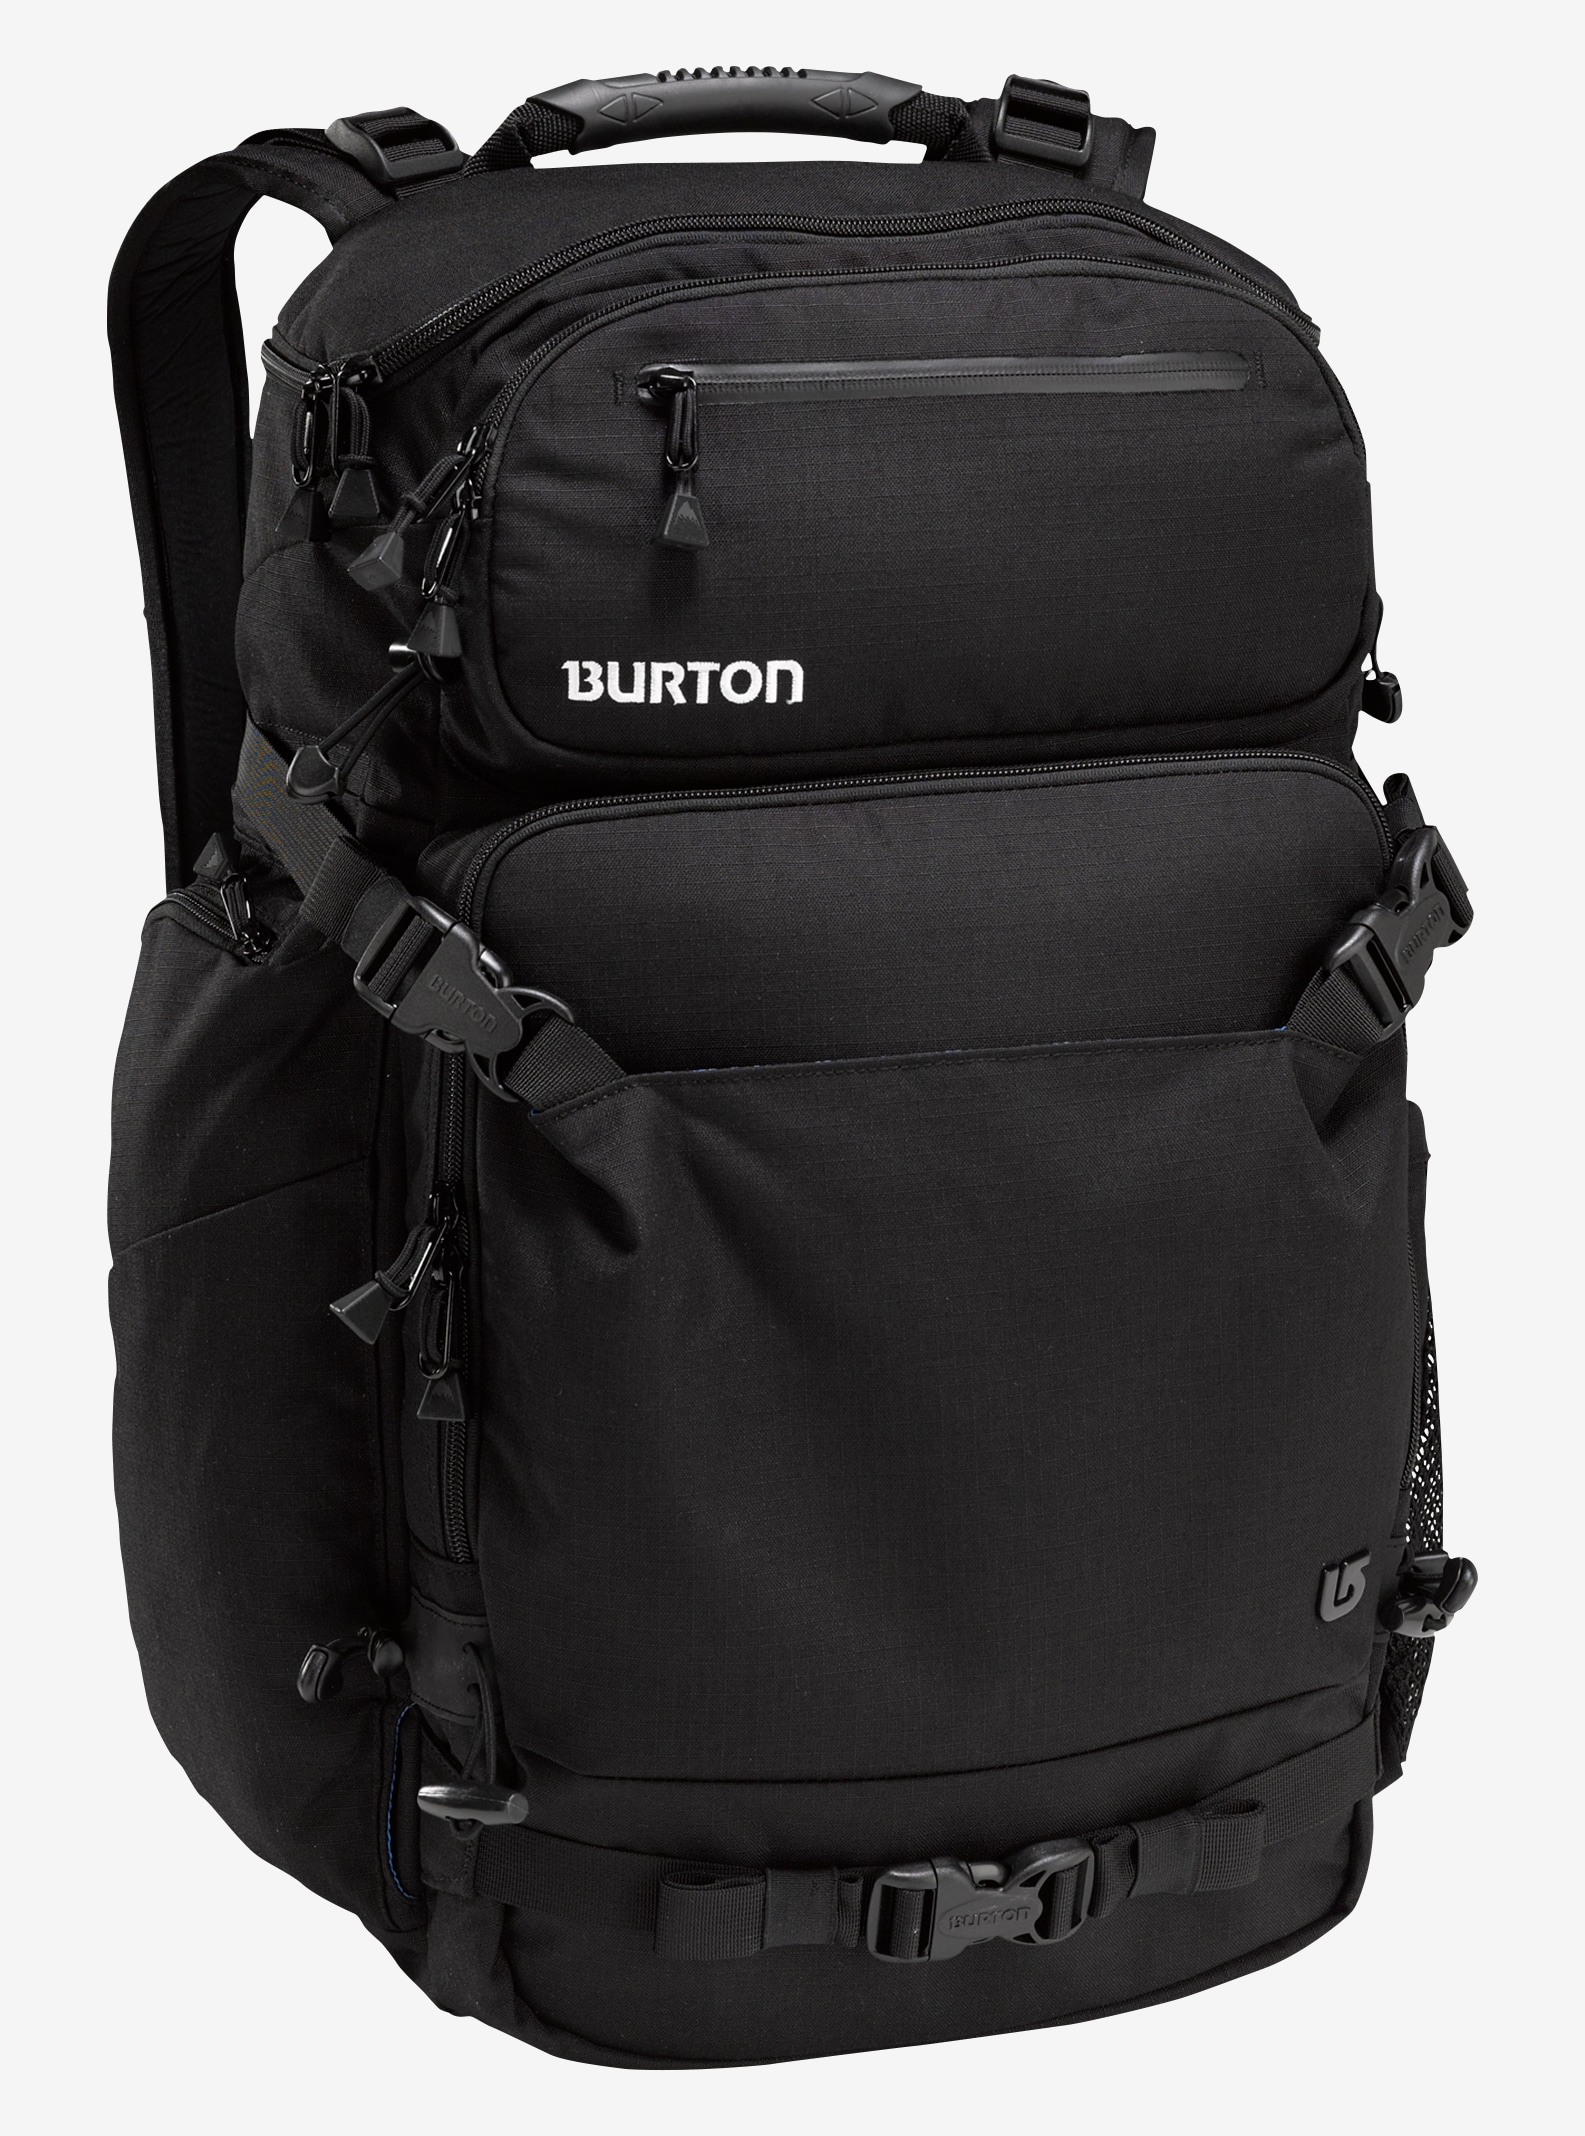 Burton - Sac à dos Focus Camera affichage en True Black